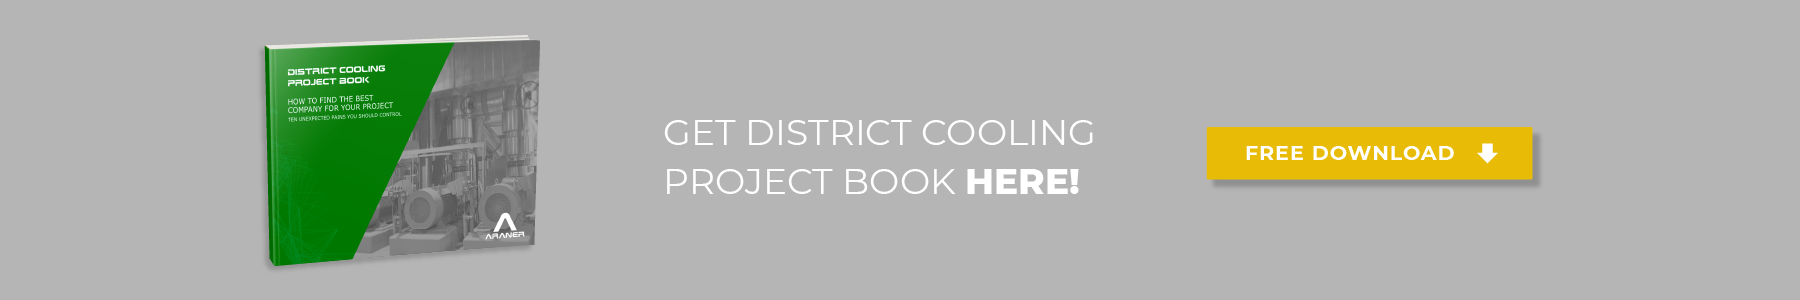 District Cooling Project Book by ARANER